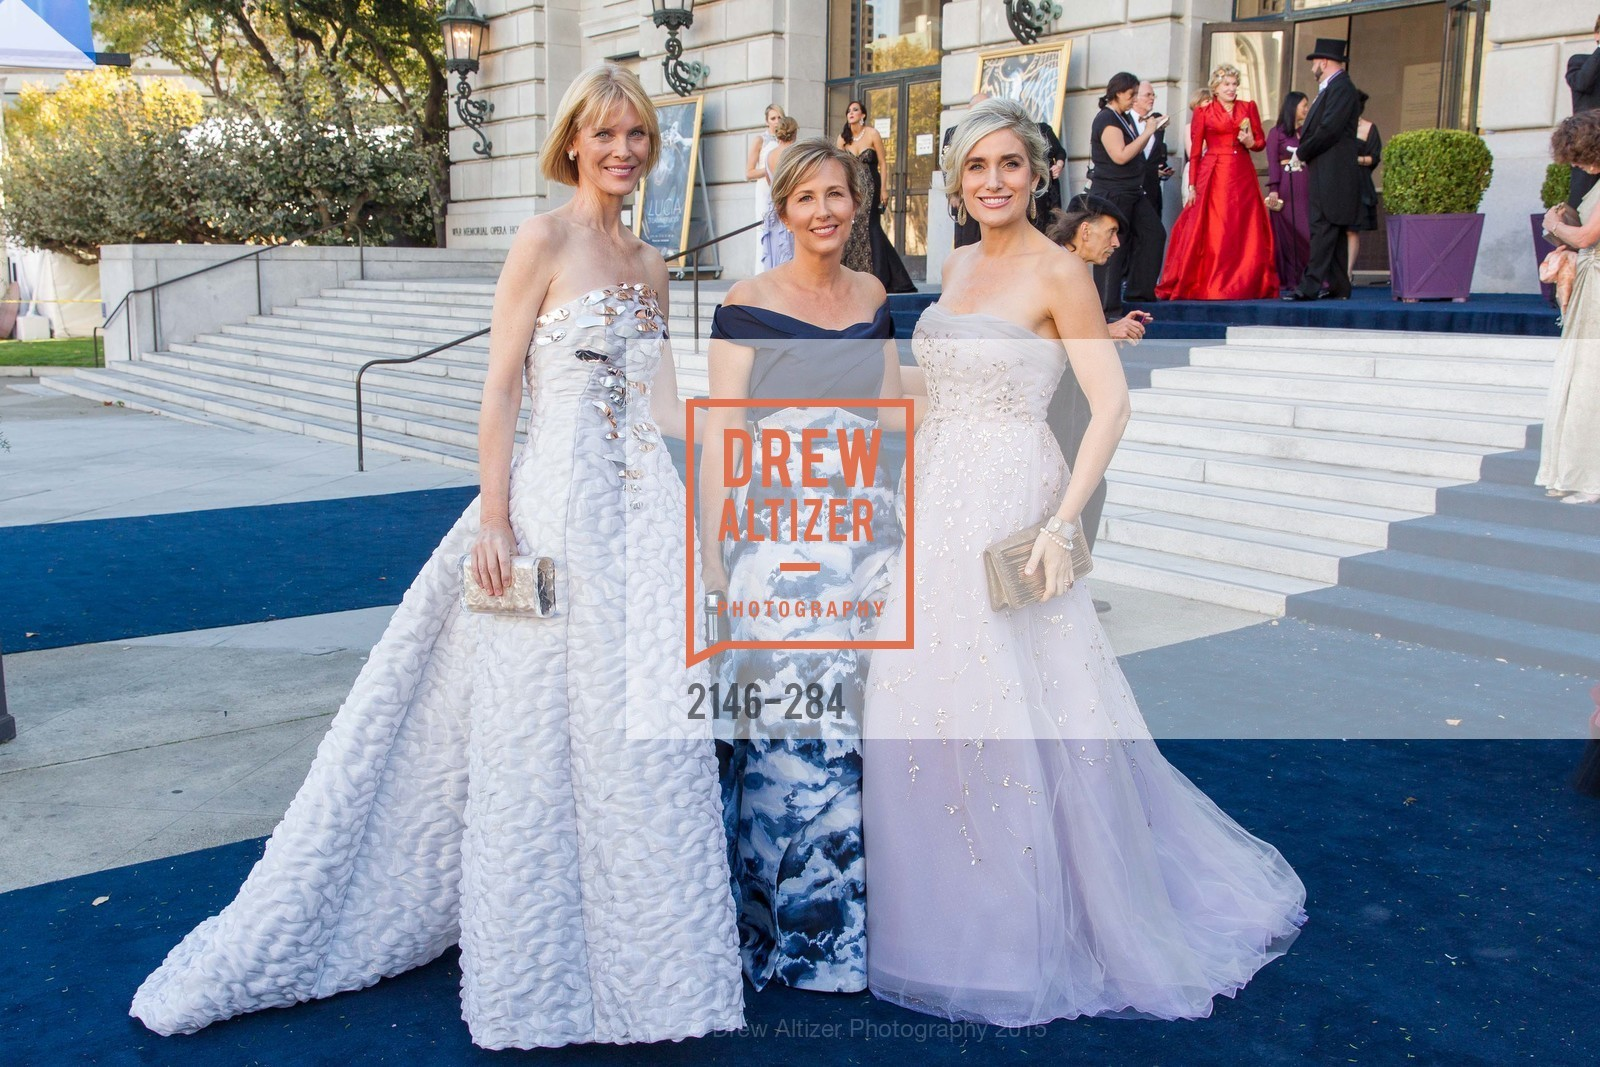 Karen Richardson, Debbie Muller, Renata Anderson, Opera Ball 2015: Moonlight & Music, War Memorial Opera House. 301 Van Ness Ave, September 11th, 2015,Drew Altizer, Drew Altizer Photography, full-service agency, private events, San Francisco photographer, photographer california